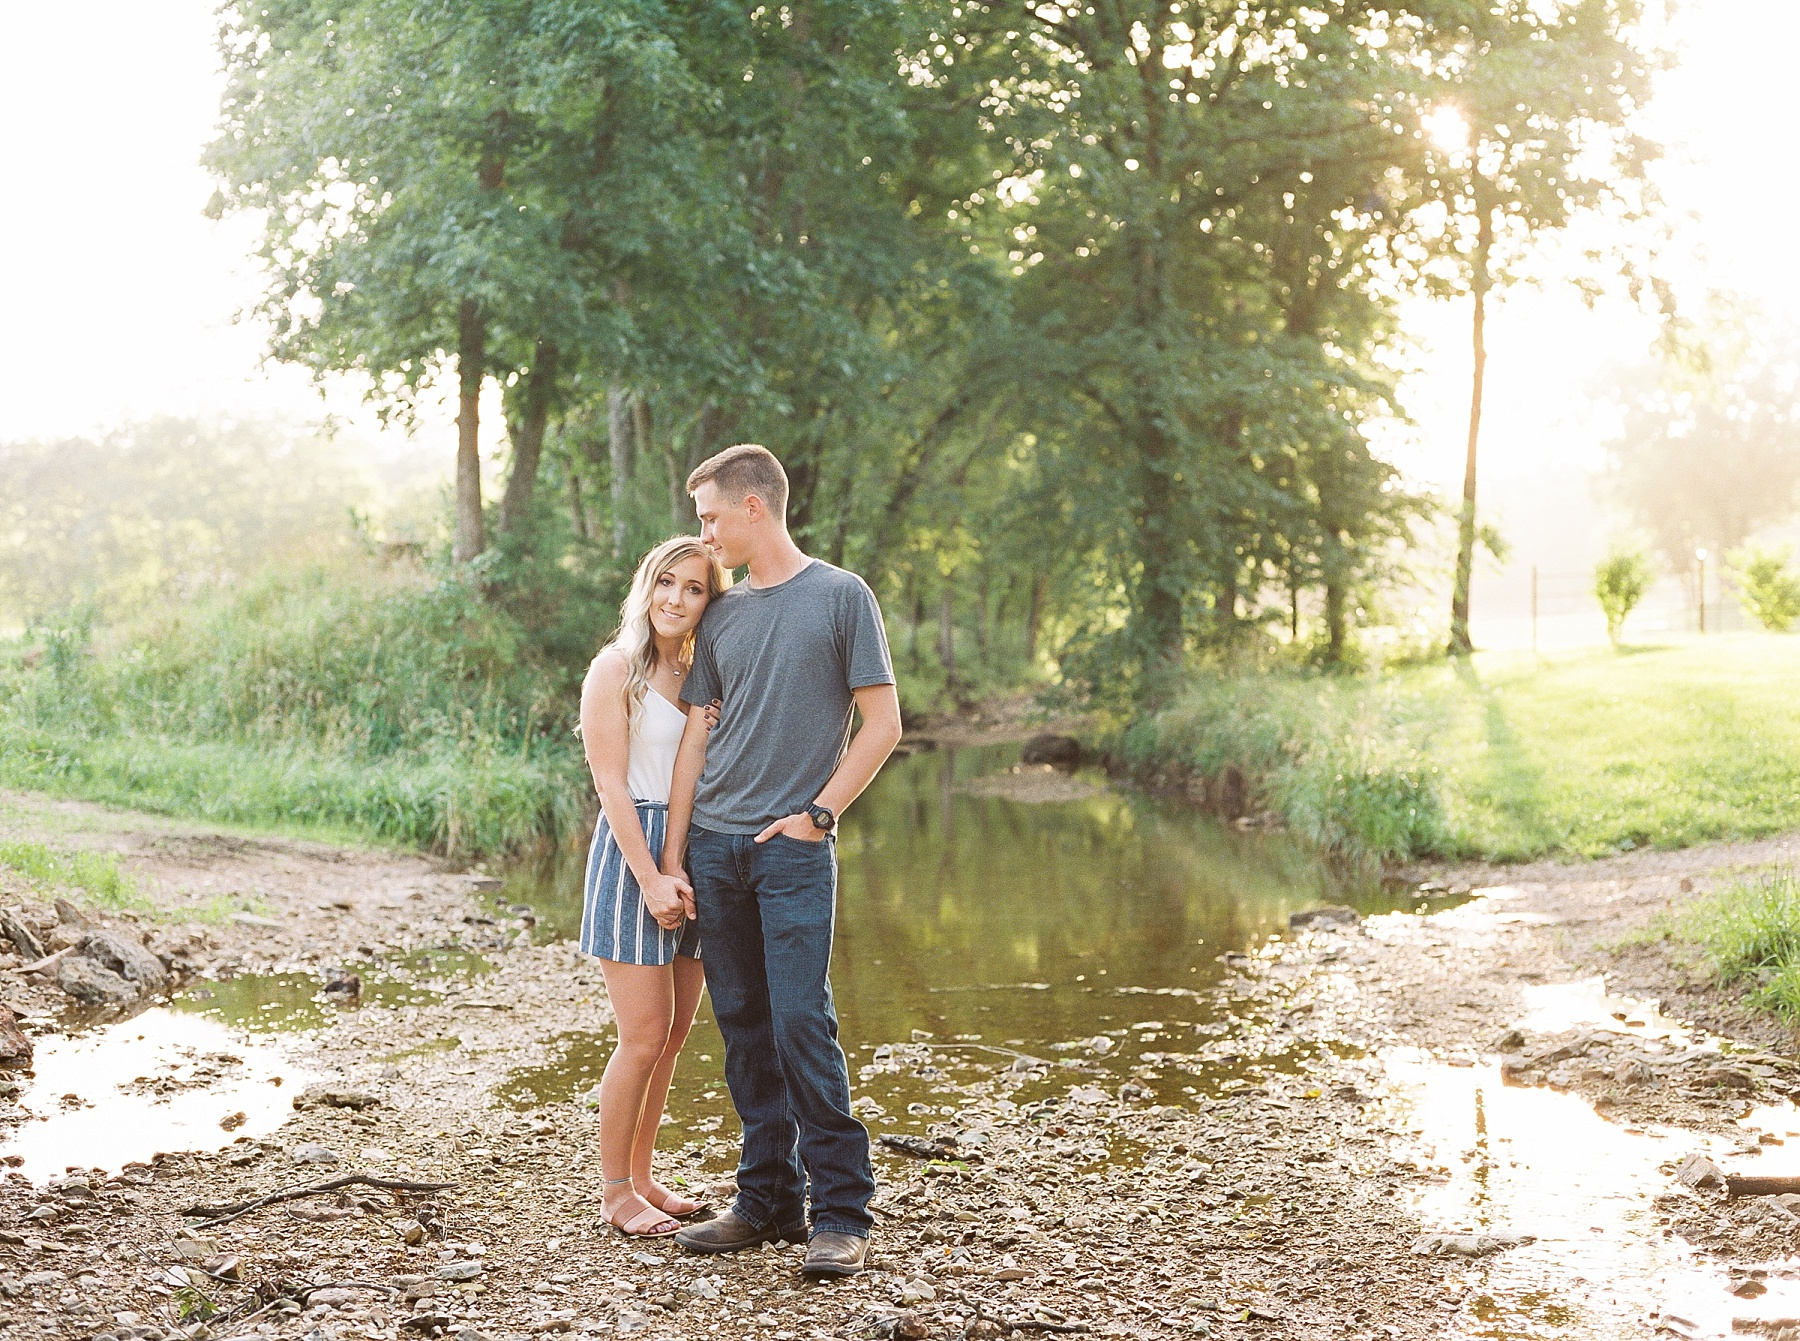 Golden Hour Summer Engagement Session at Lakeside Valley and Vineyards at Kempkers Back 40 by Kelsi Kliethermes Photography Best Missouri and Maui Wedding Photographer_0007.jpg